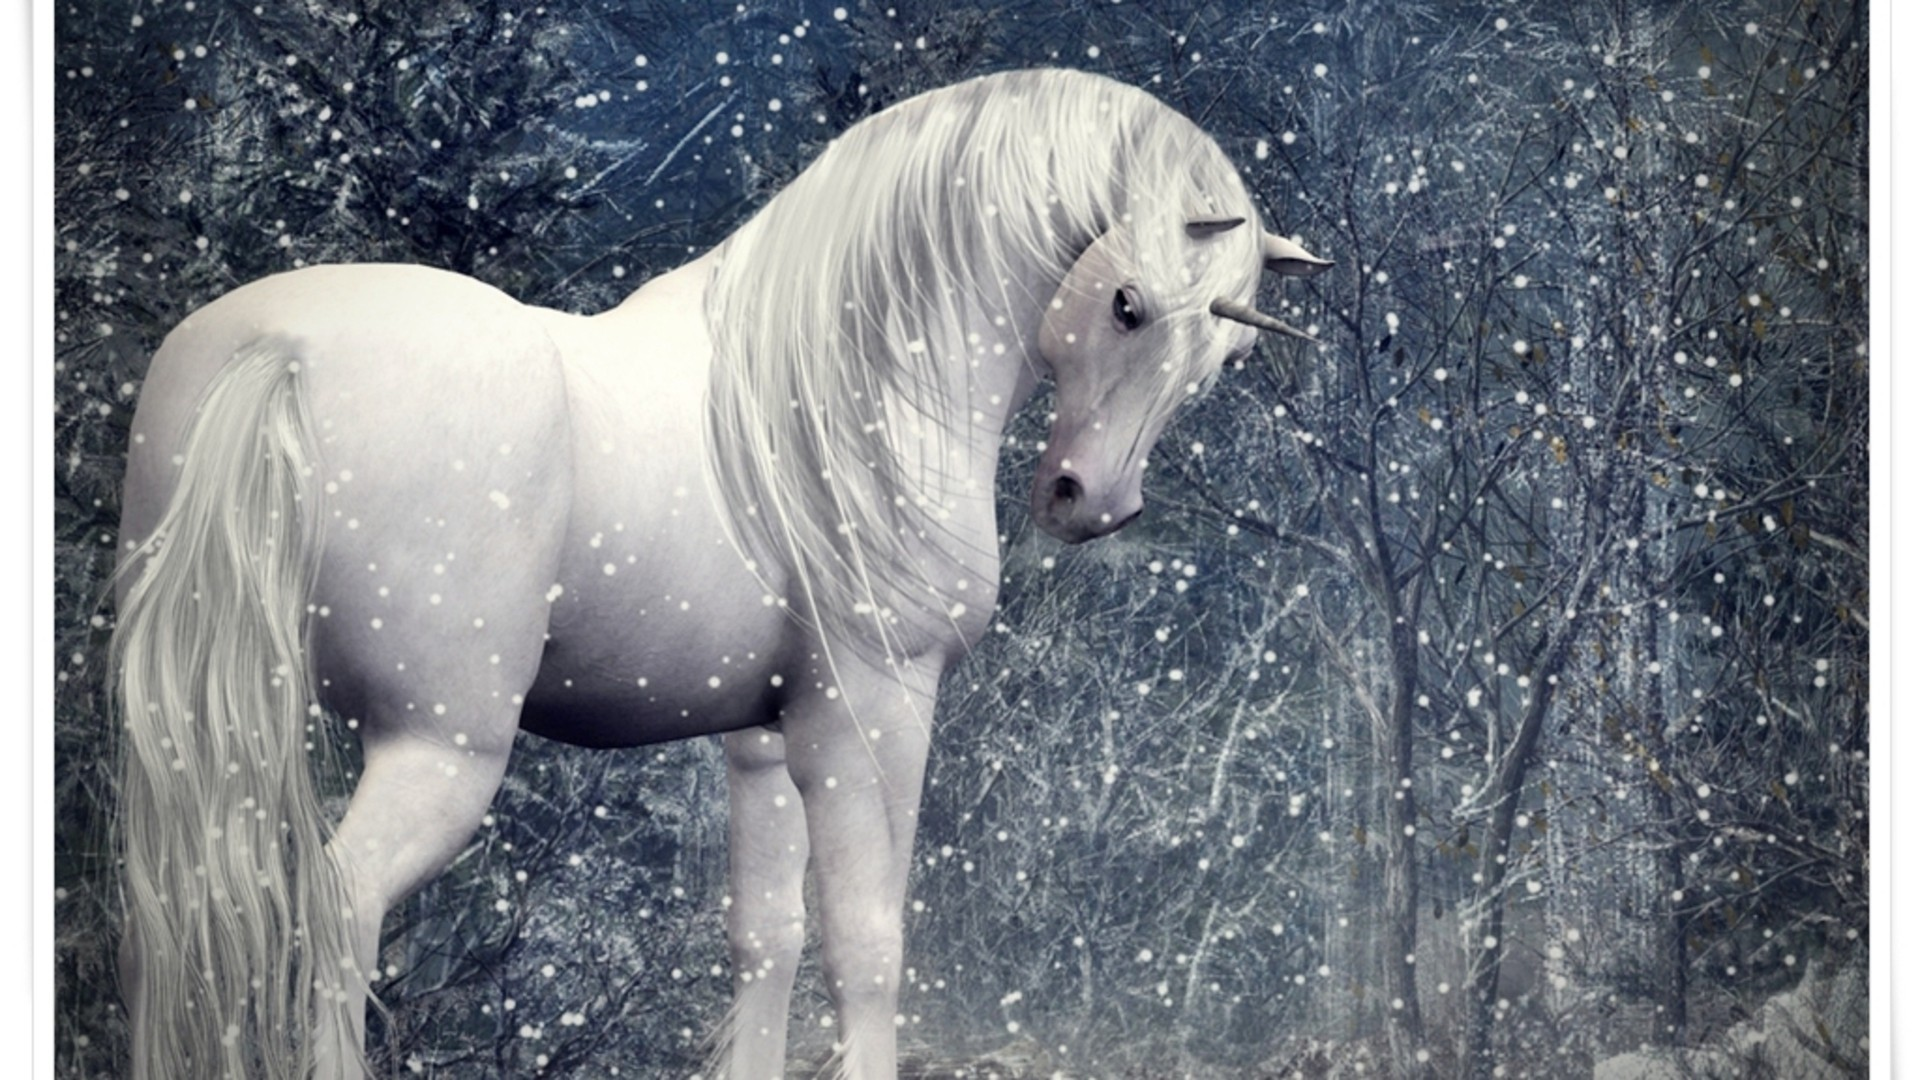 Unicorn in a snowy forest wallpaper allwallpaper 15624 pc en unicorn in a snowy forest wallpaper voltagebd Images